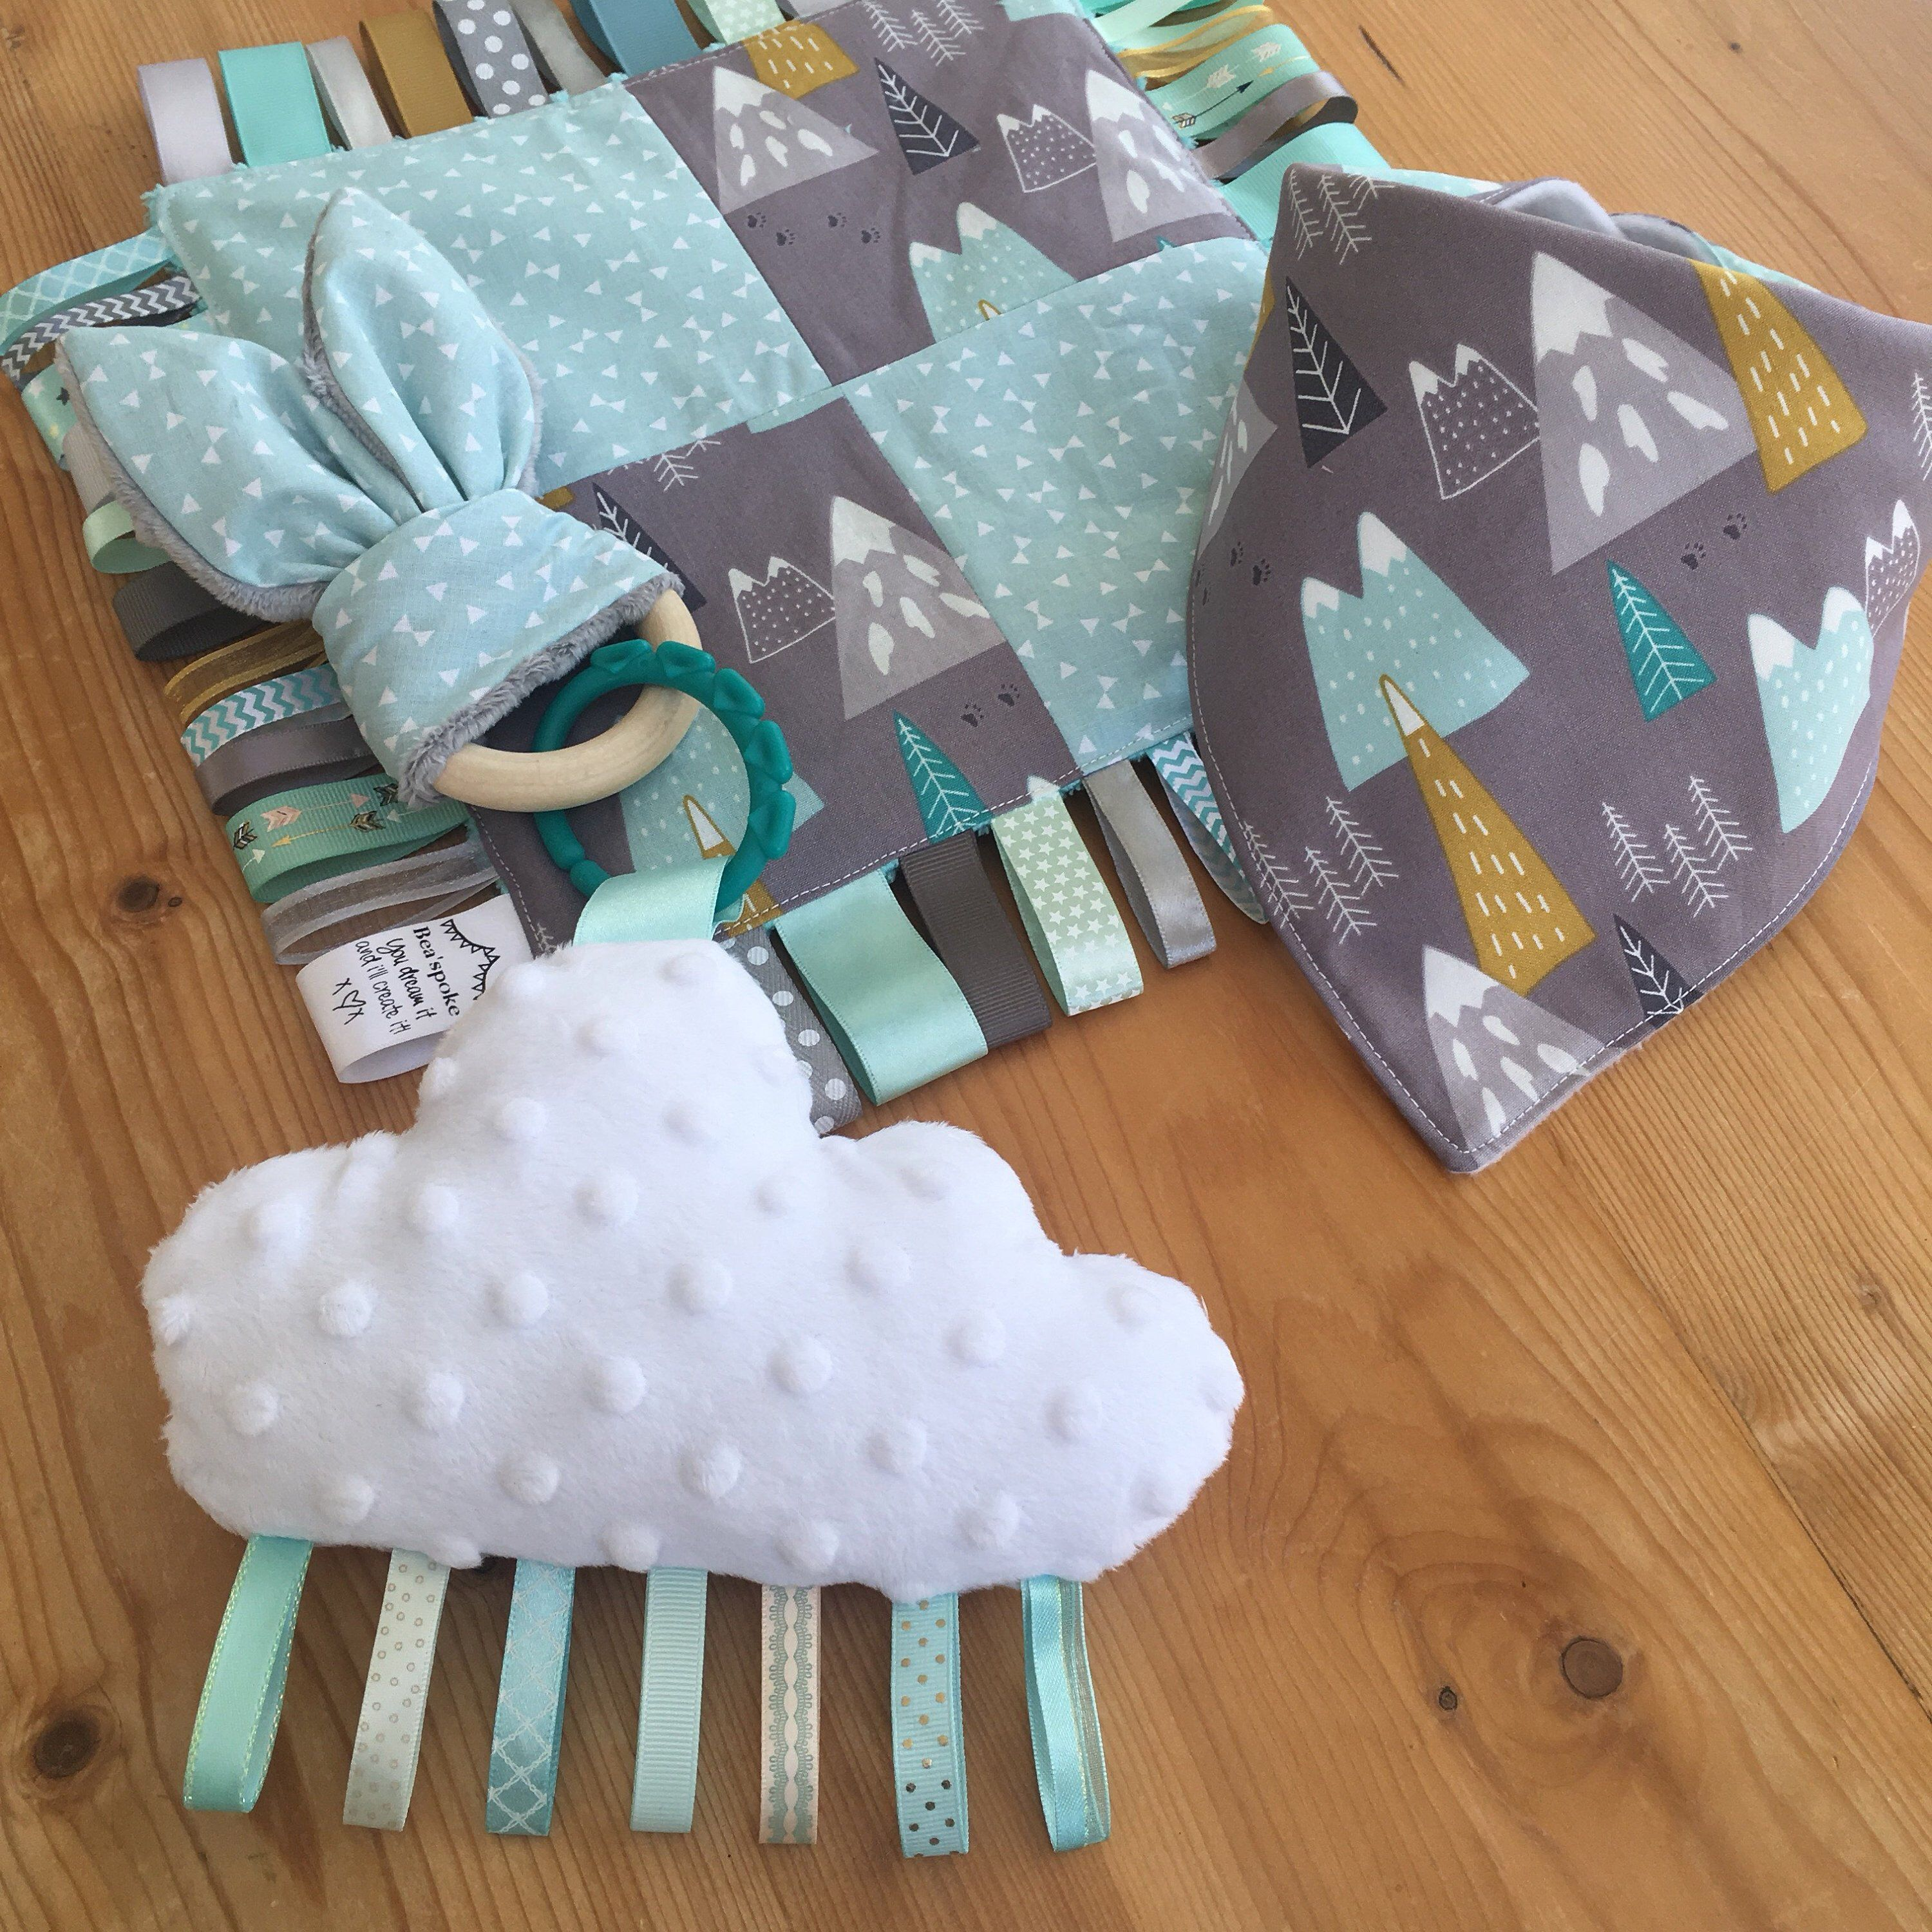 Baby Mint Mountains Ribbon Taggy Teether Quilt Boy Girl Aqua Grey Explorer  Wanderlust Adventure Map Cloud Nursery Teething Taggie Blanket Bib Gift Set 946fad952